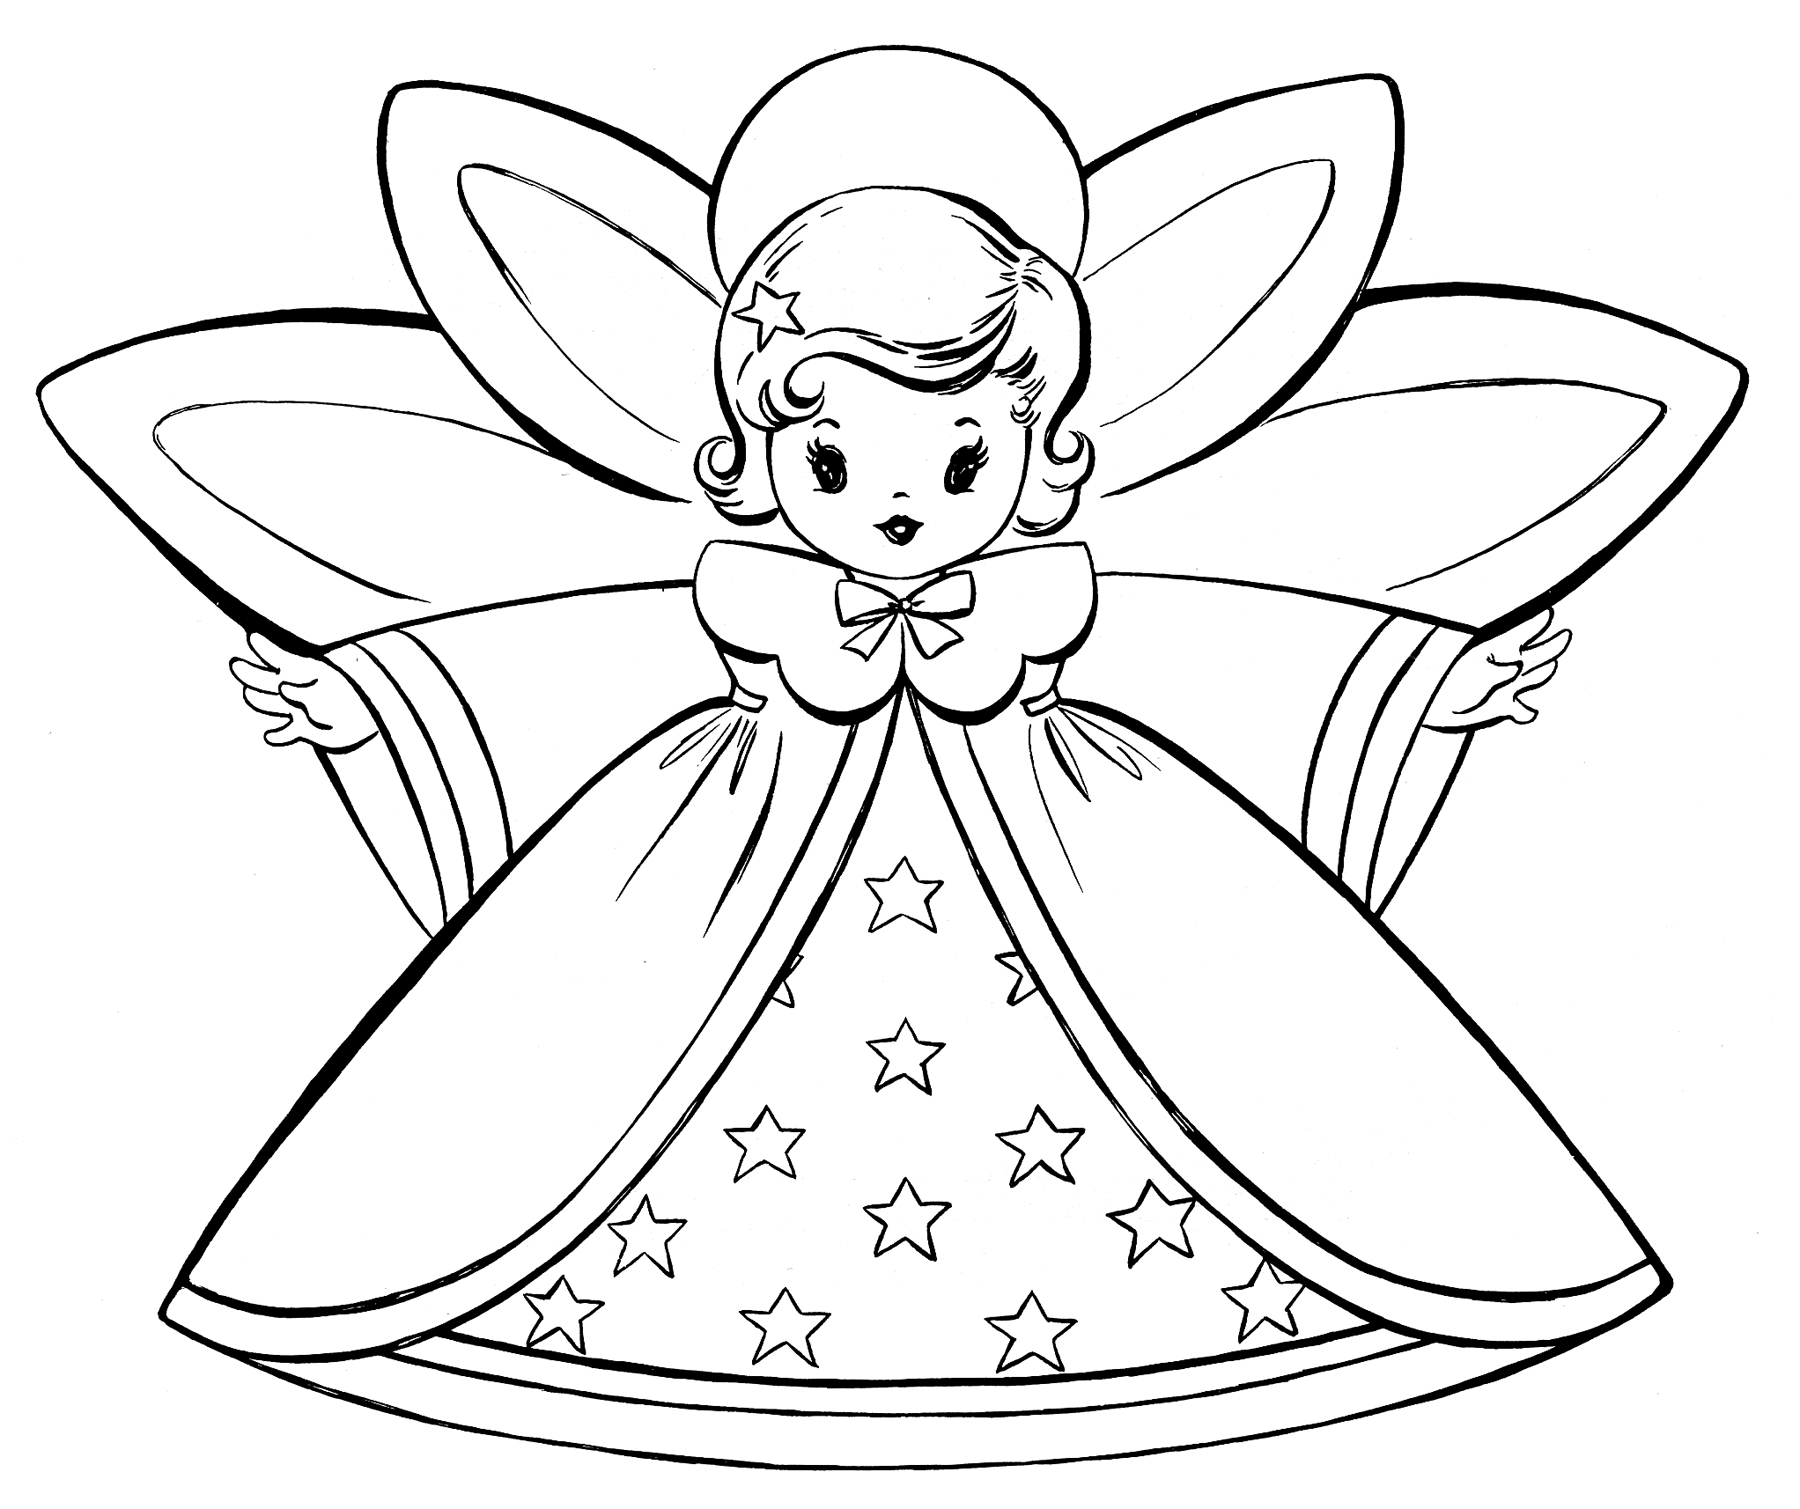 Images About Coloring Pages On Pinterest